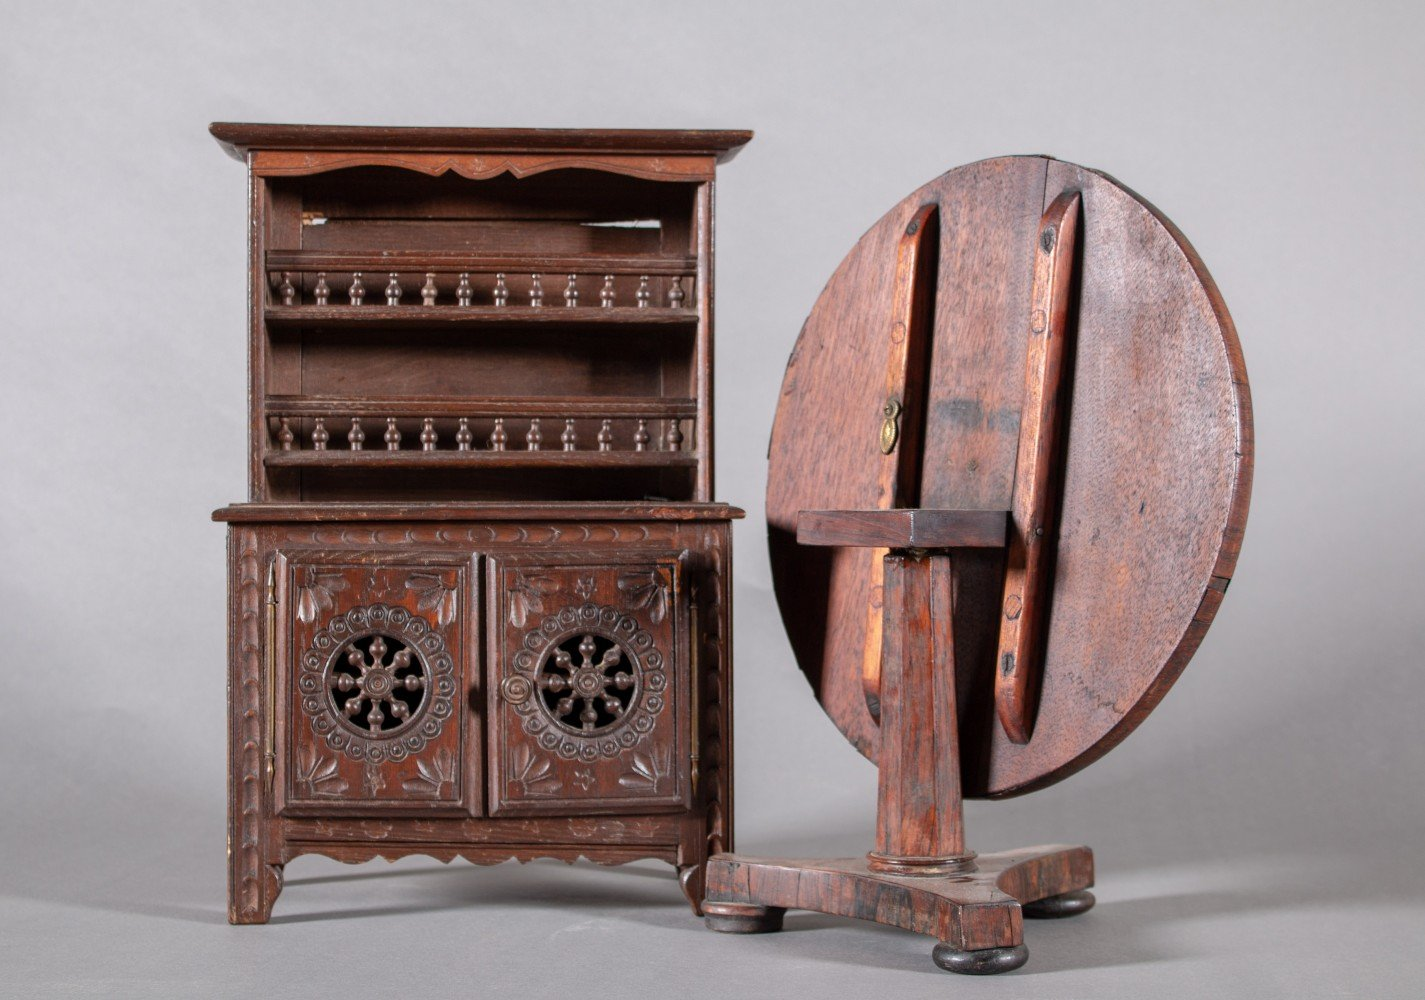 Two Pieces of Miniature Antique Furniture